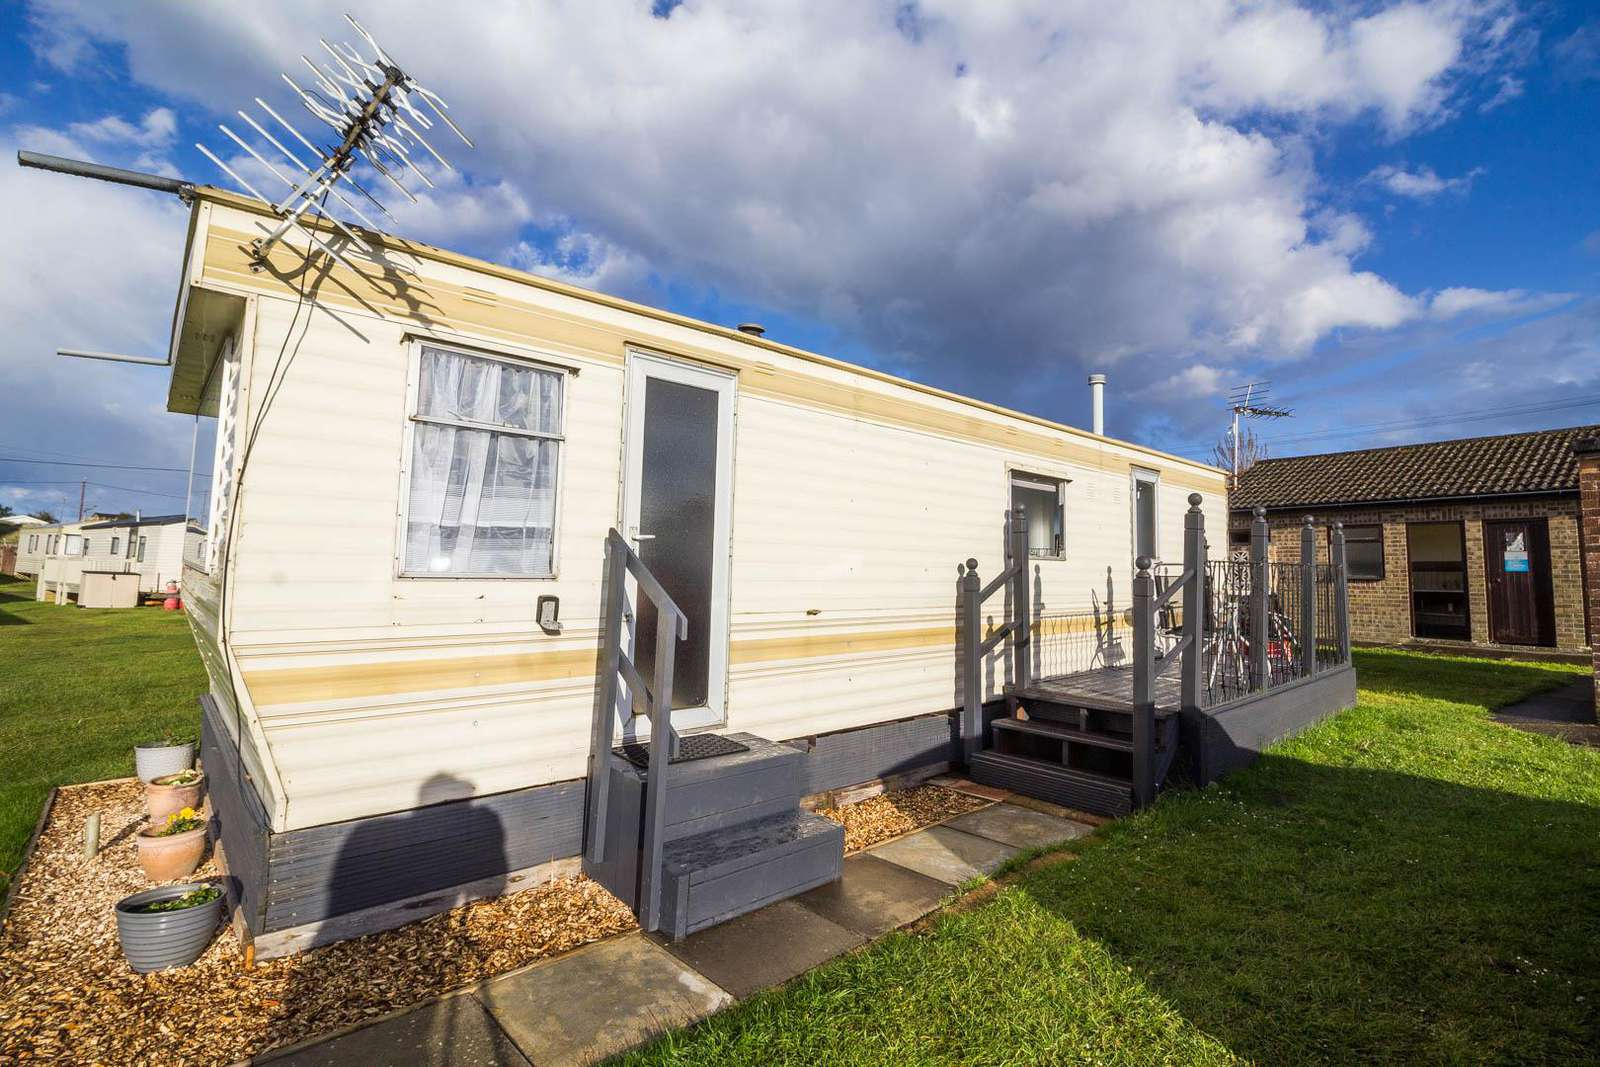 48086B – Beach Estate, 2 bed, 4 berth caravan with decking. Emerald Rated. - property